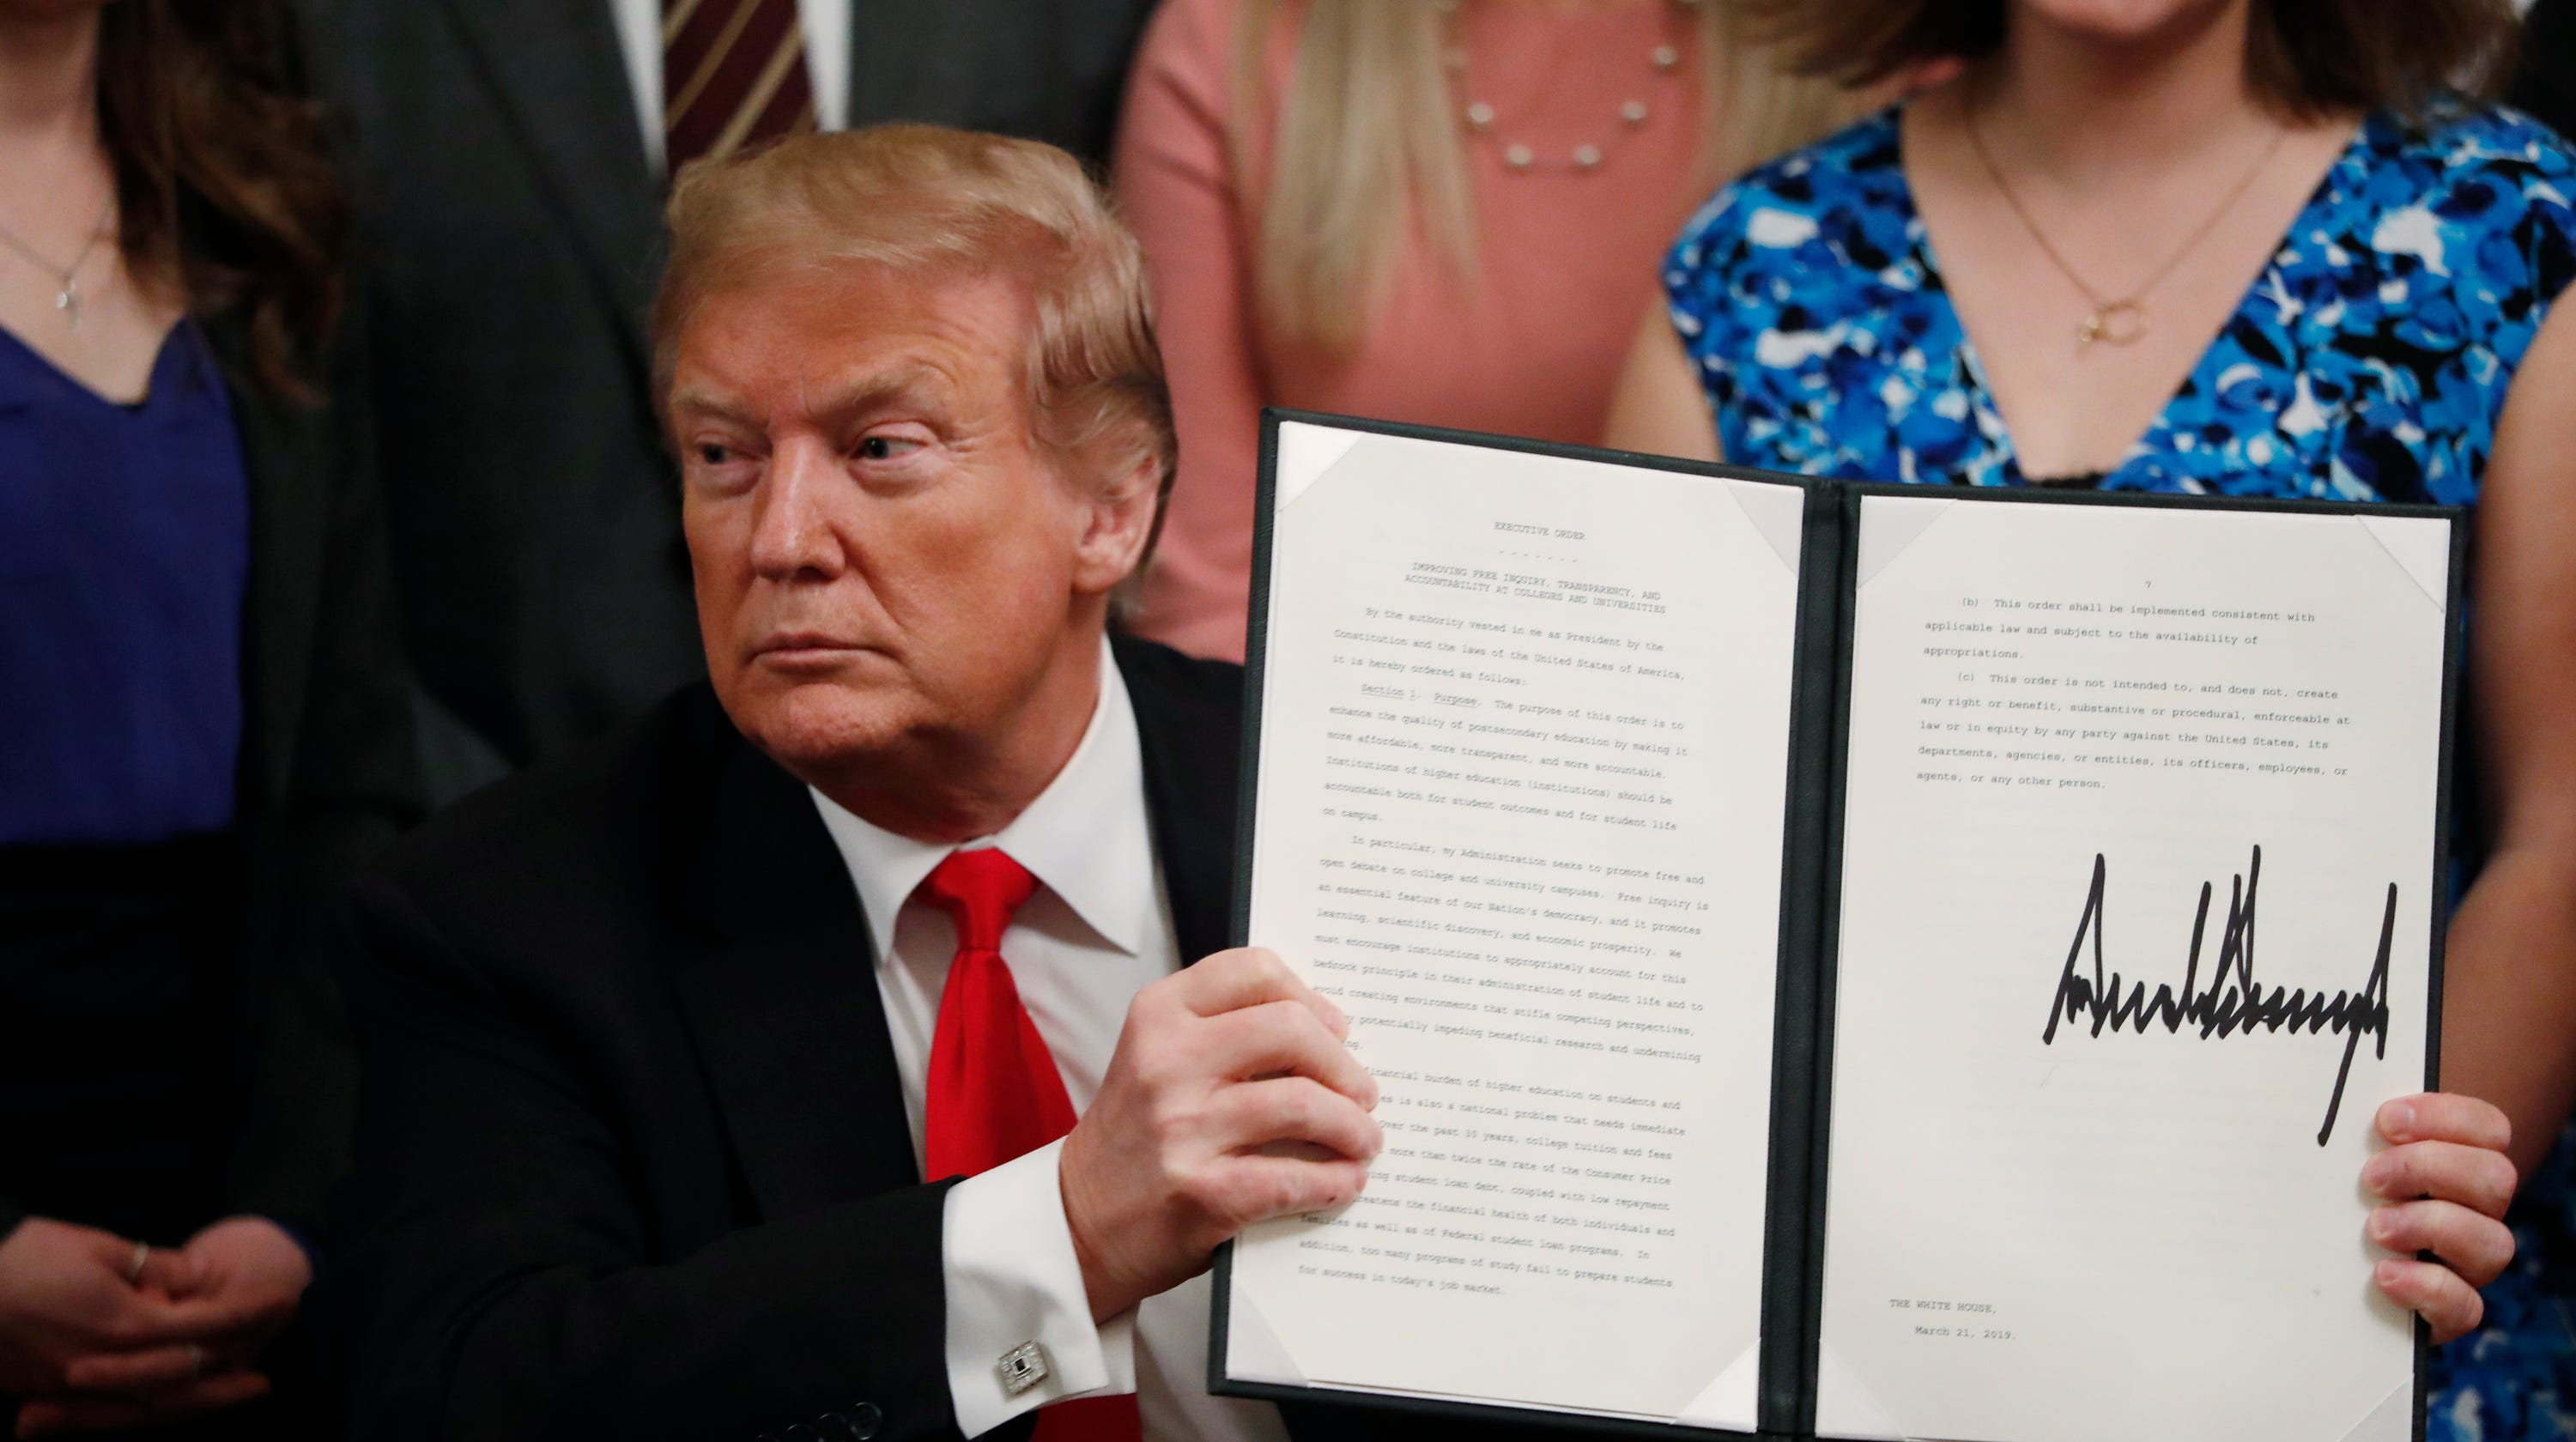 'I am with you': President Trump signs executive order on free speech at college campuses